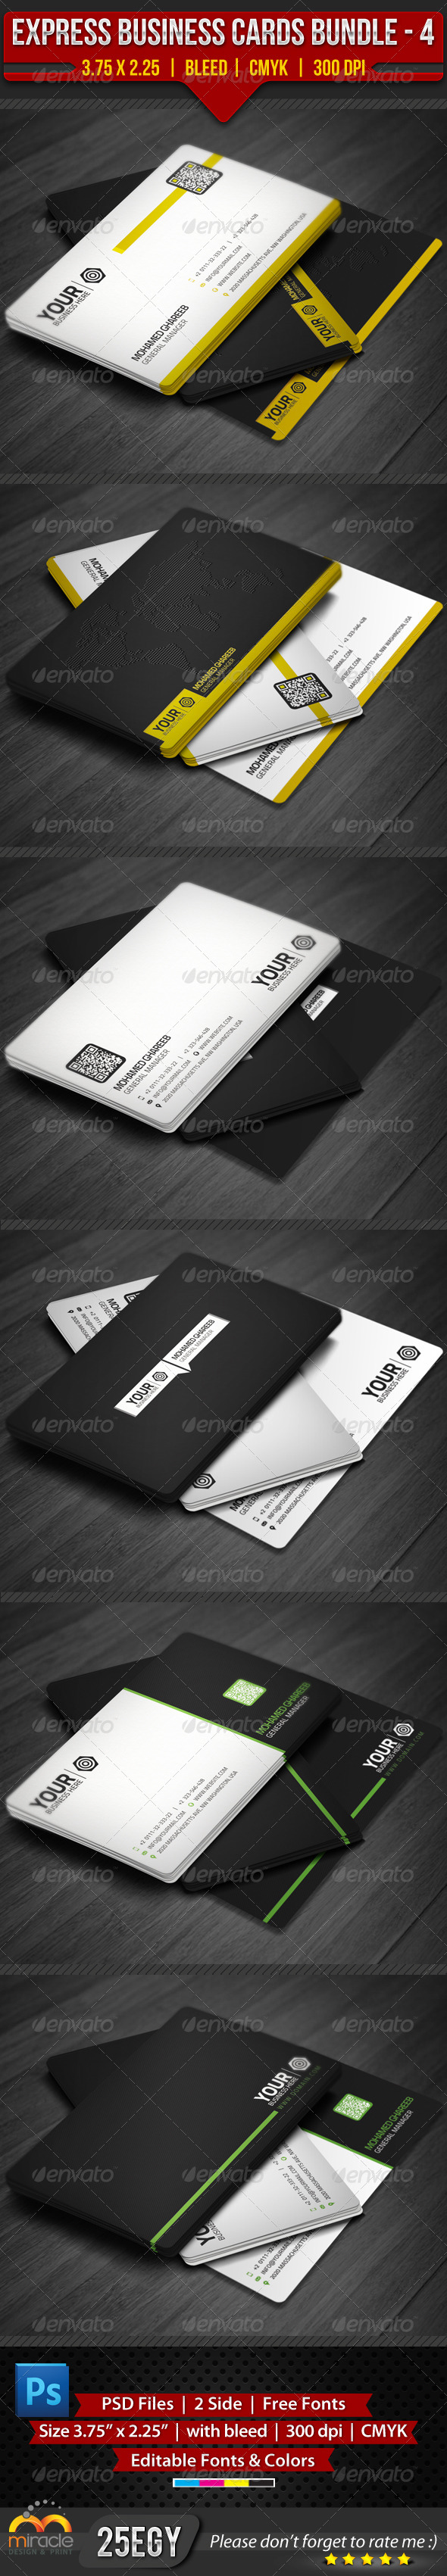 GraphicRiver Express Business Cards Bundle 4 4566218